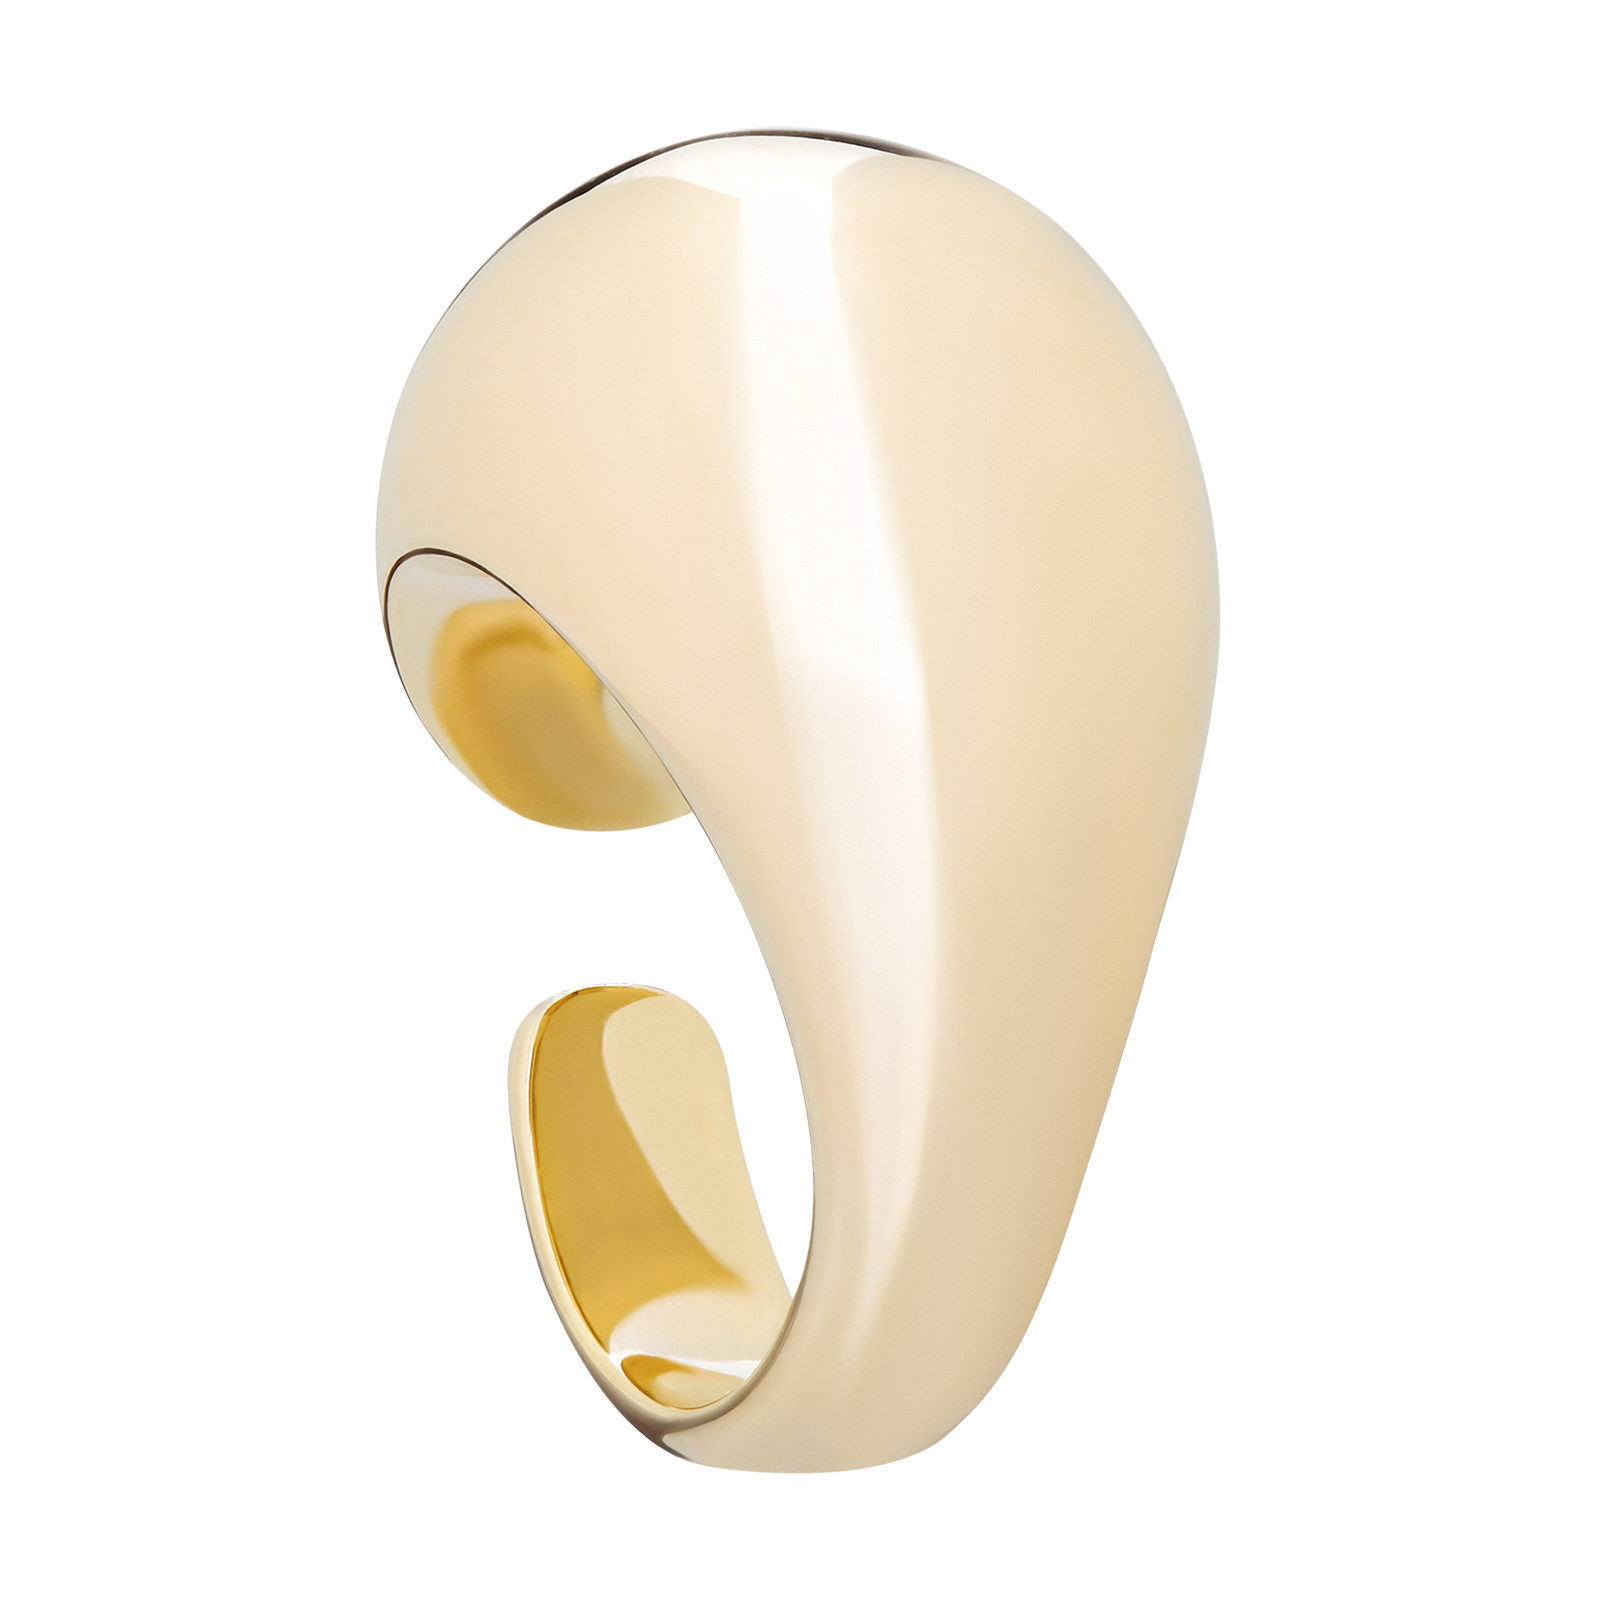 Gold ring product photography